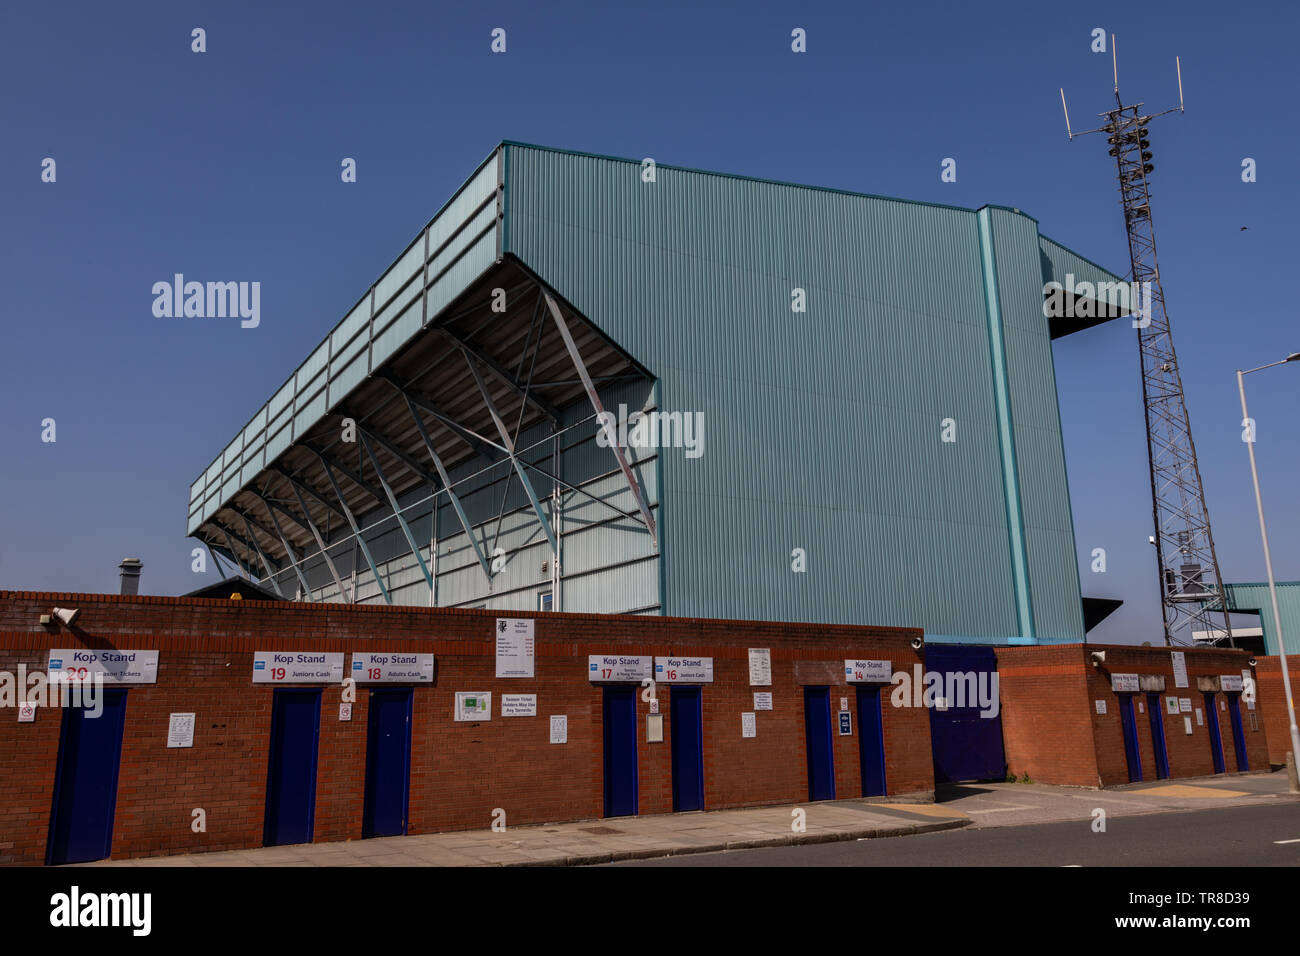 Kop Stand at Tranmere Rovers Wirral April 2019 Stock Photo